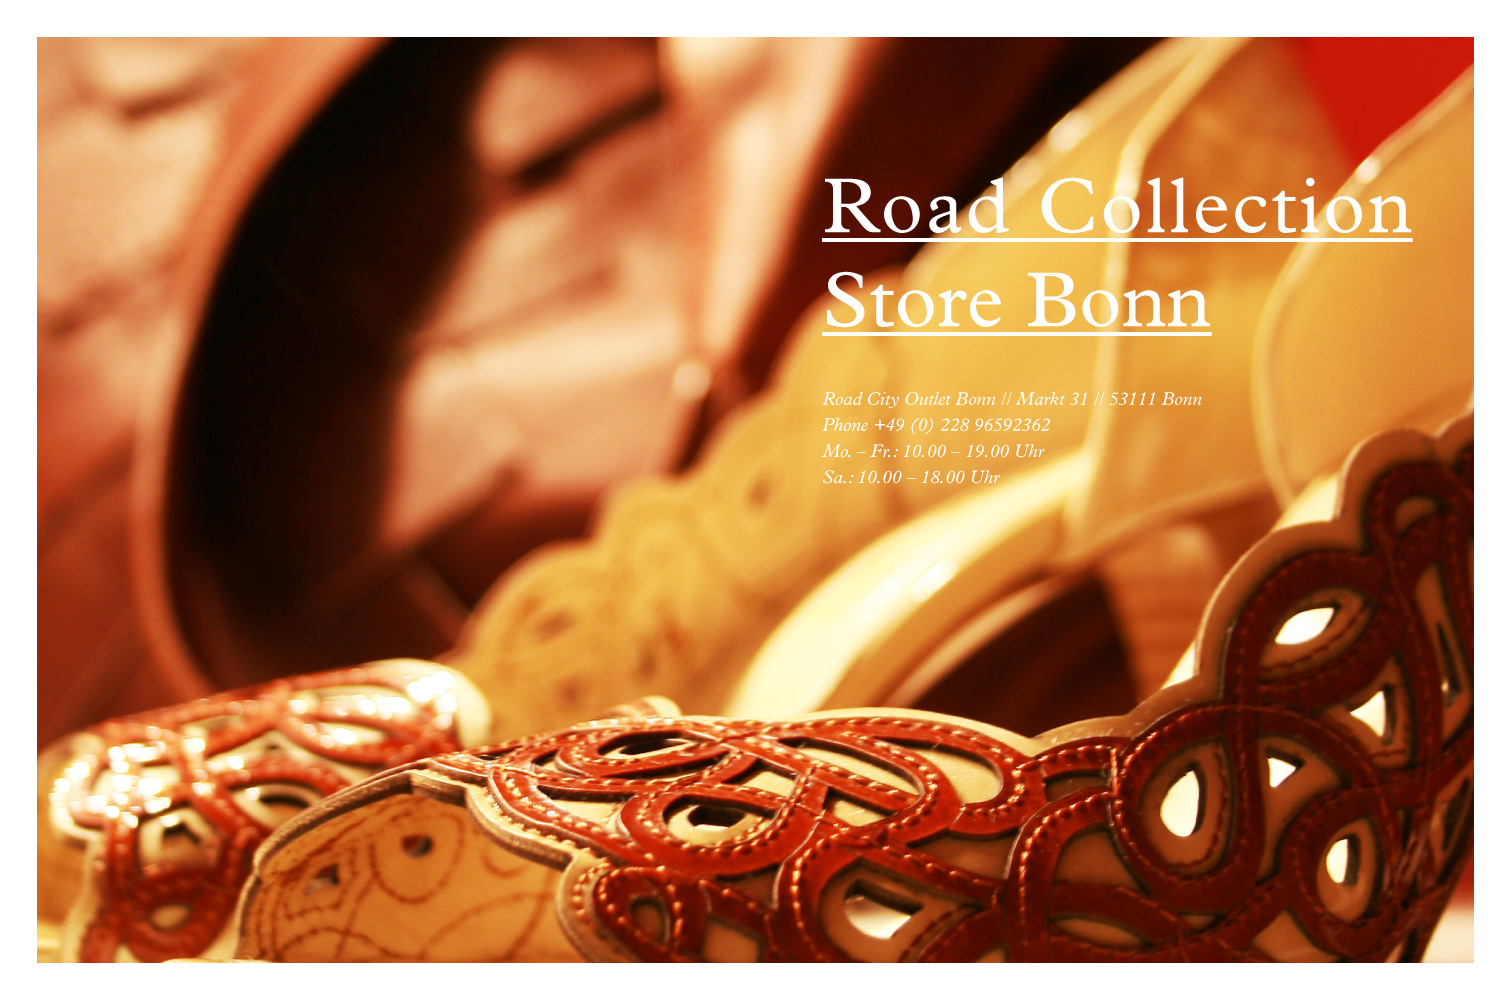 Road Collection Lookbook 2010